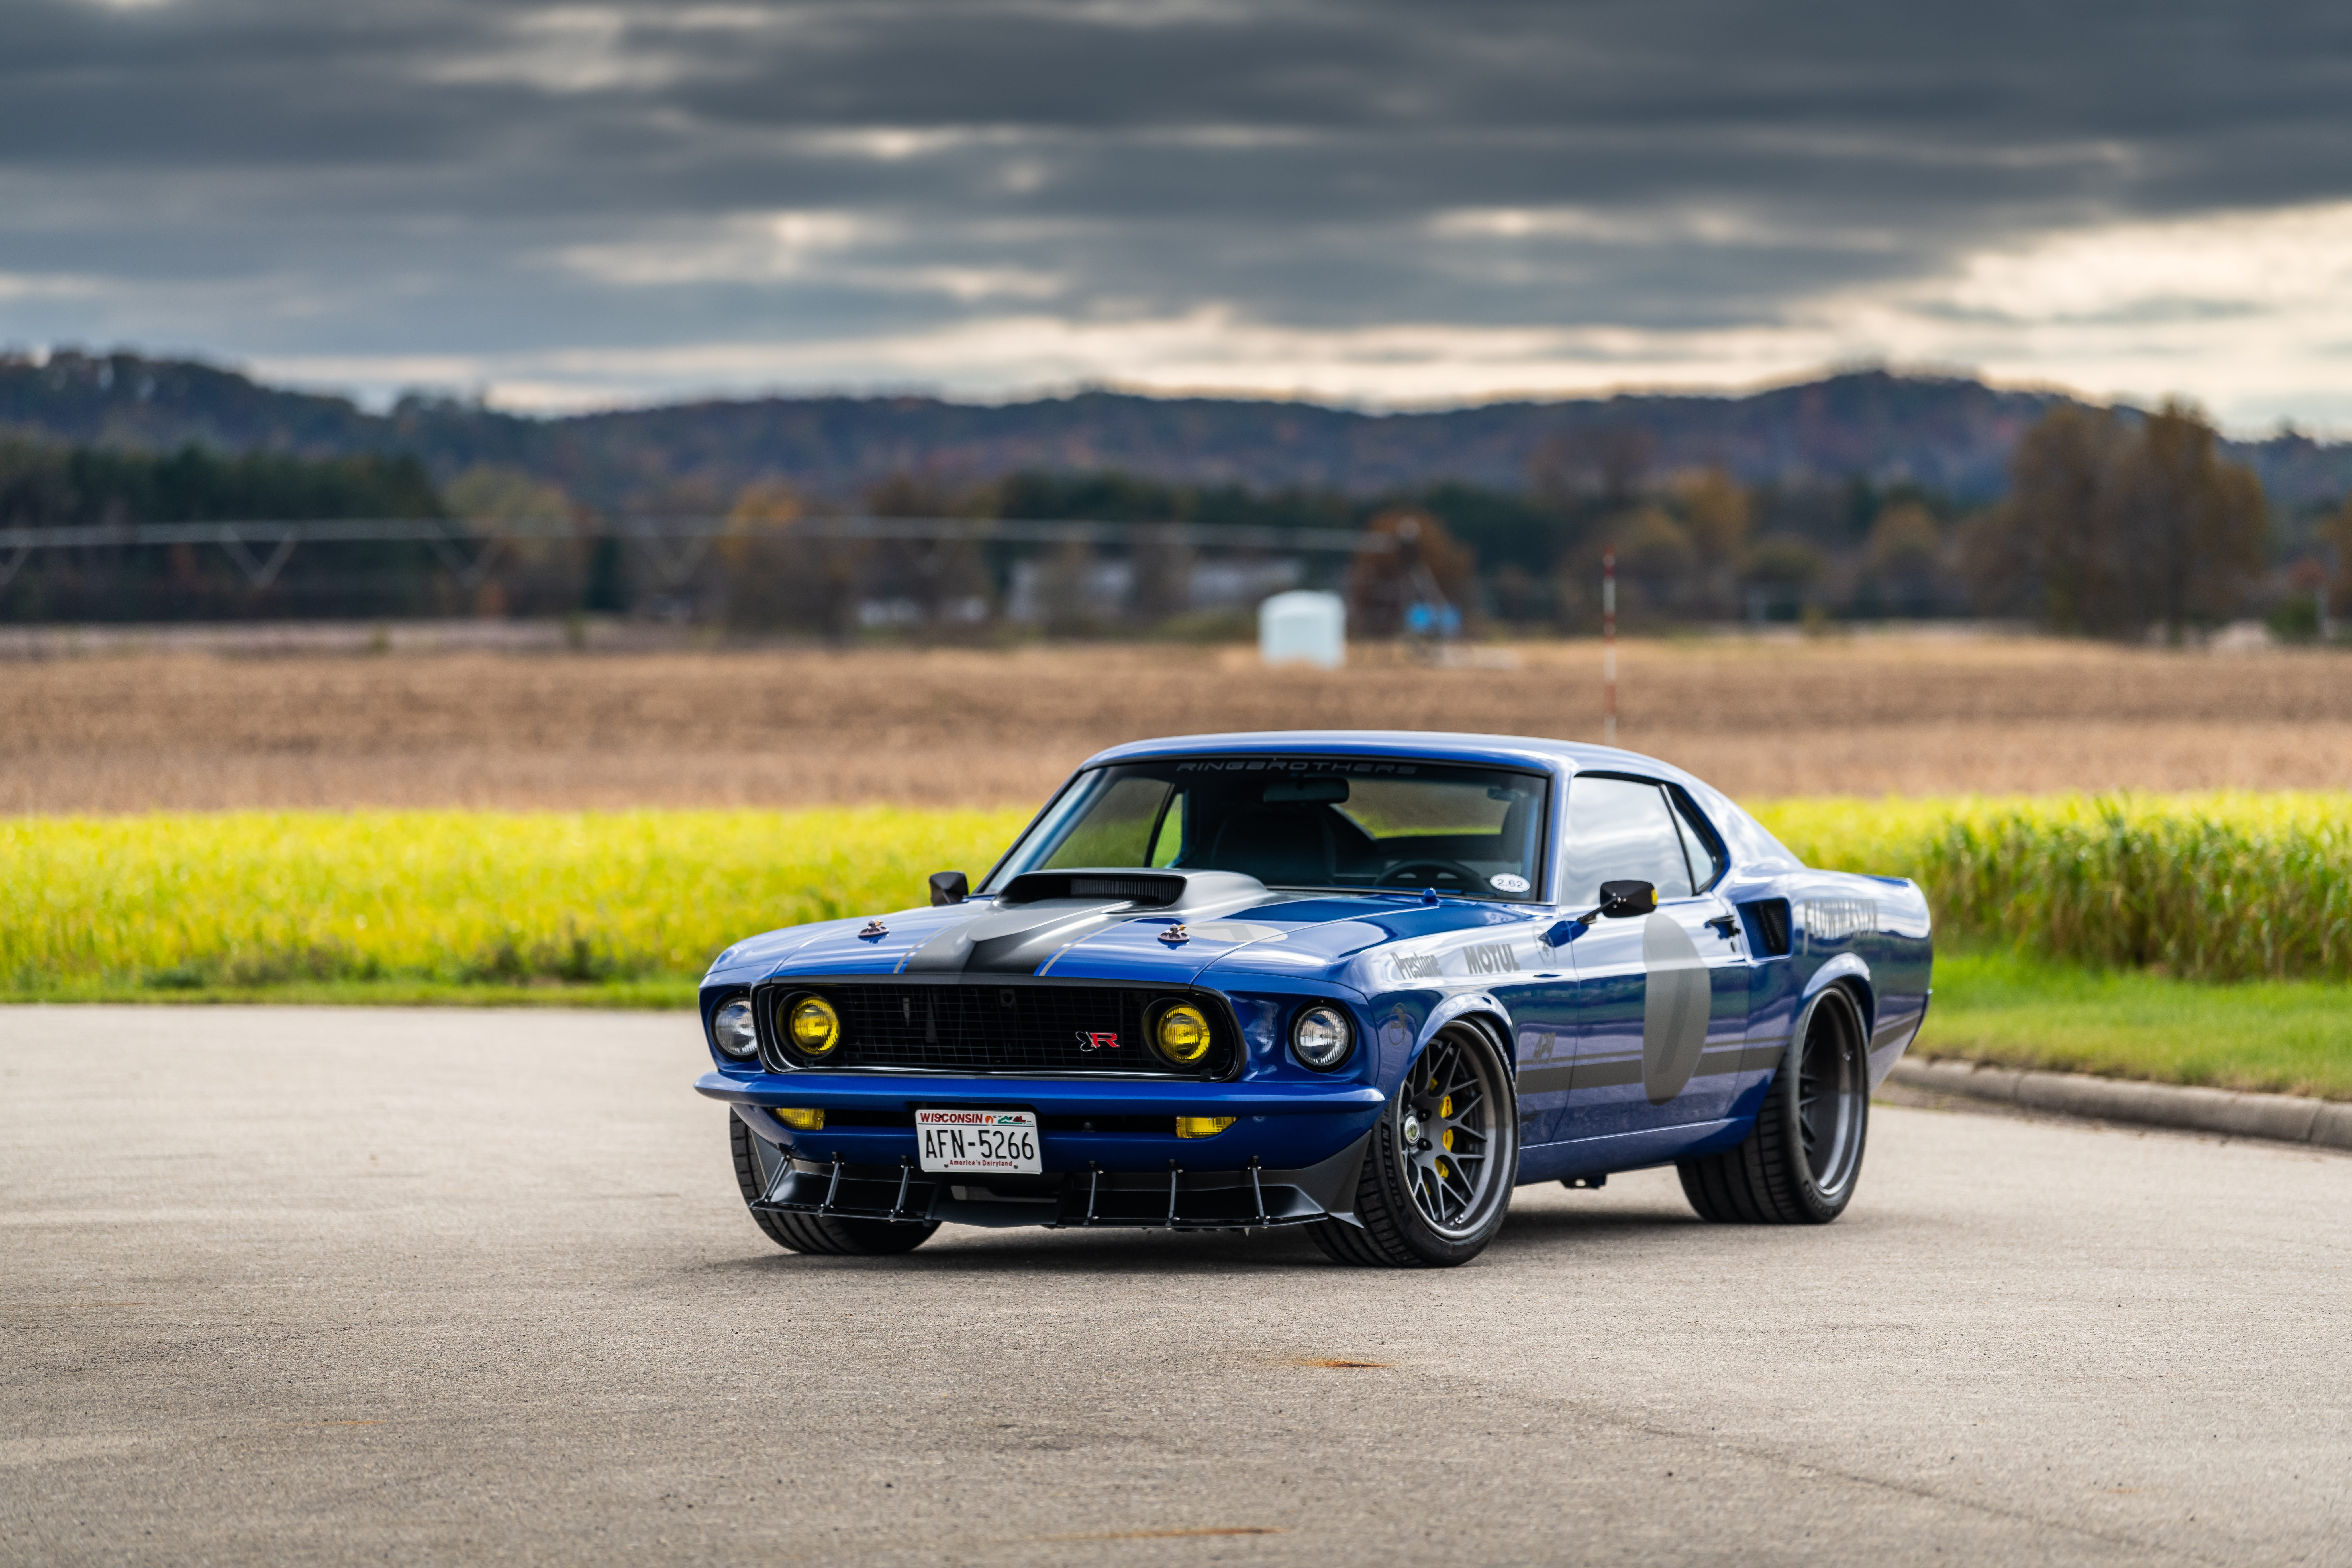 7680x4320 Ford Mustang Muscle Car 8k 8k HD 4k Wallpapers ...